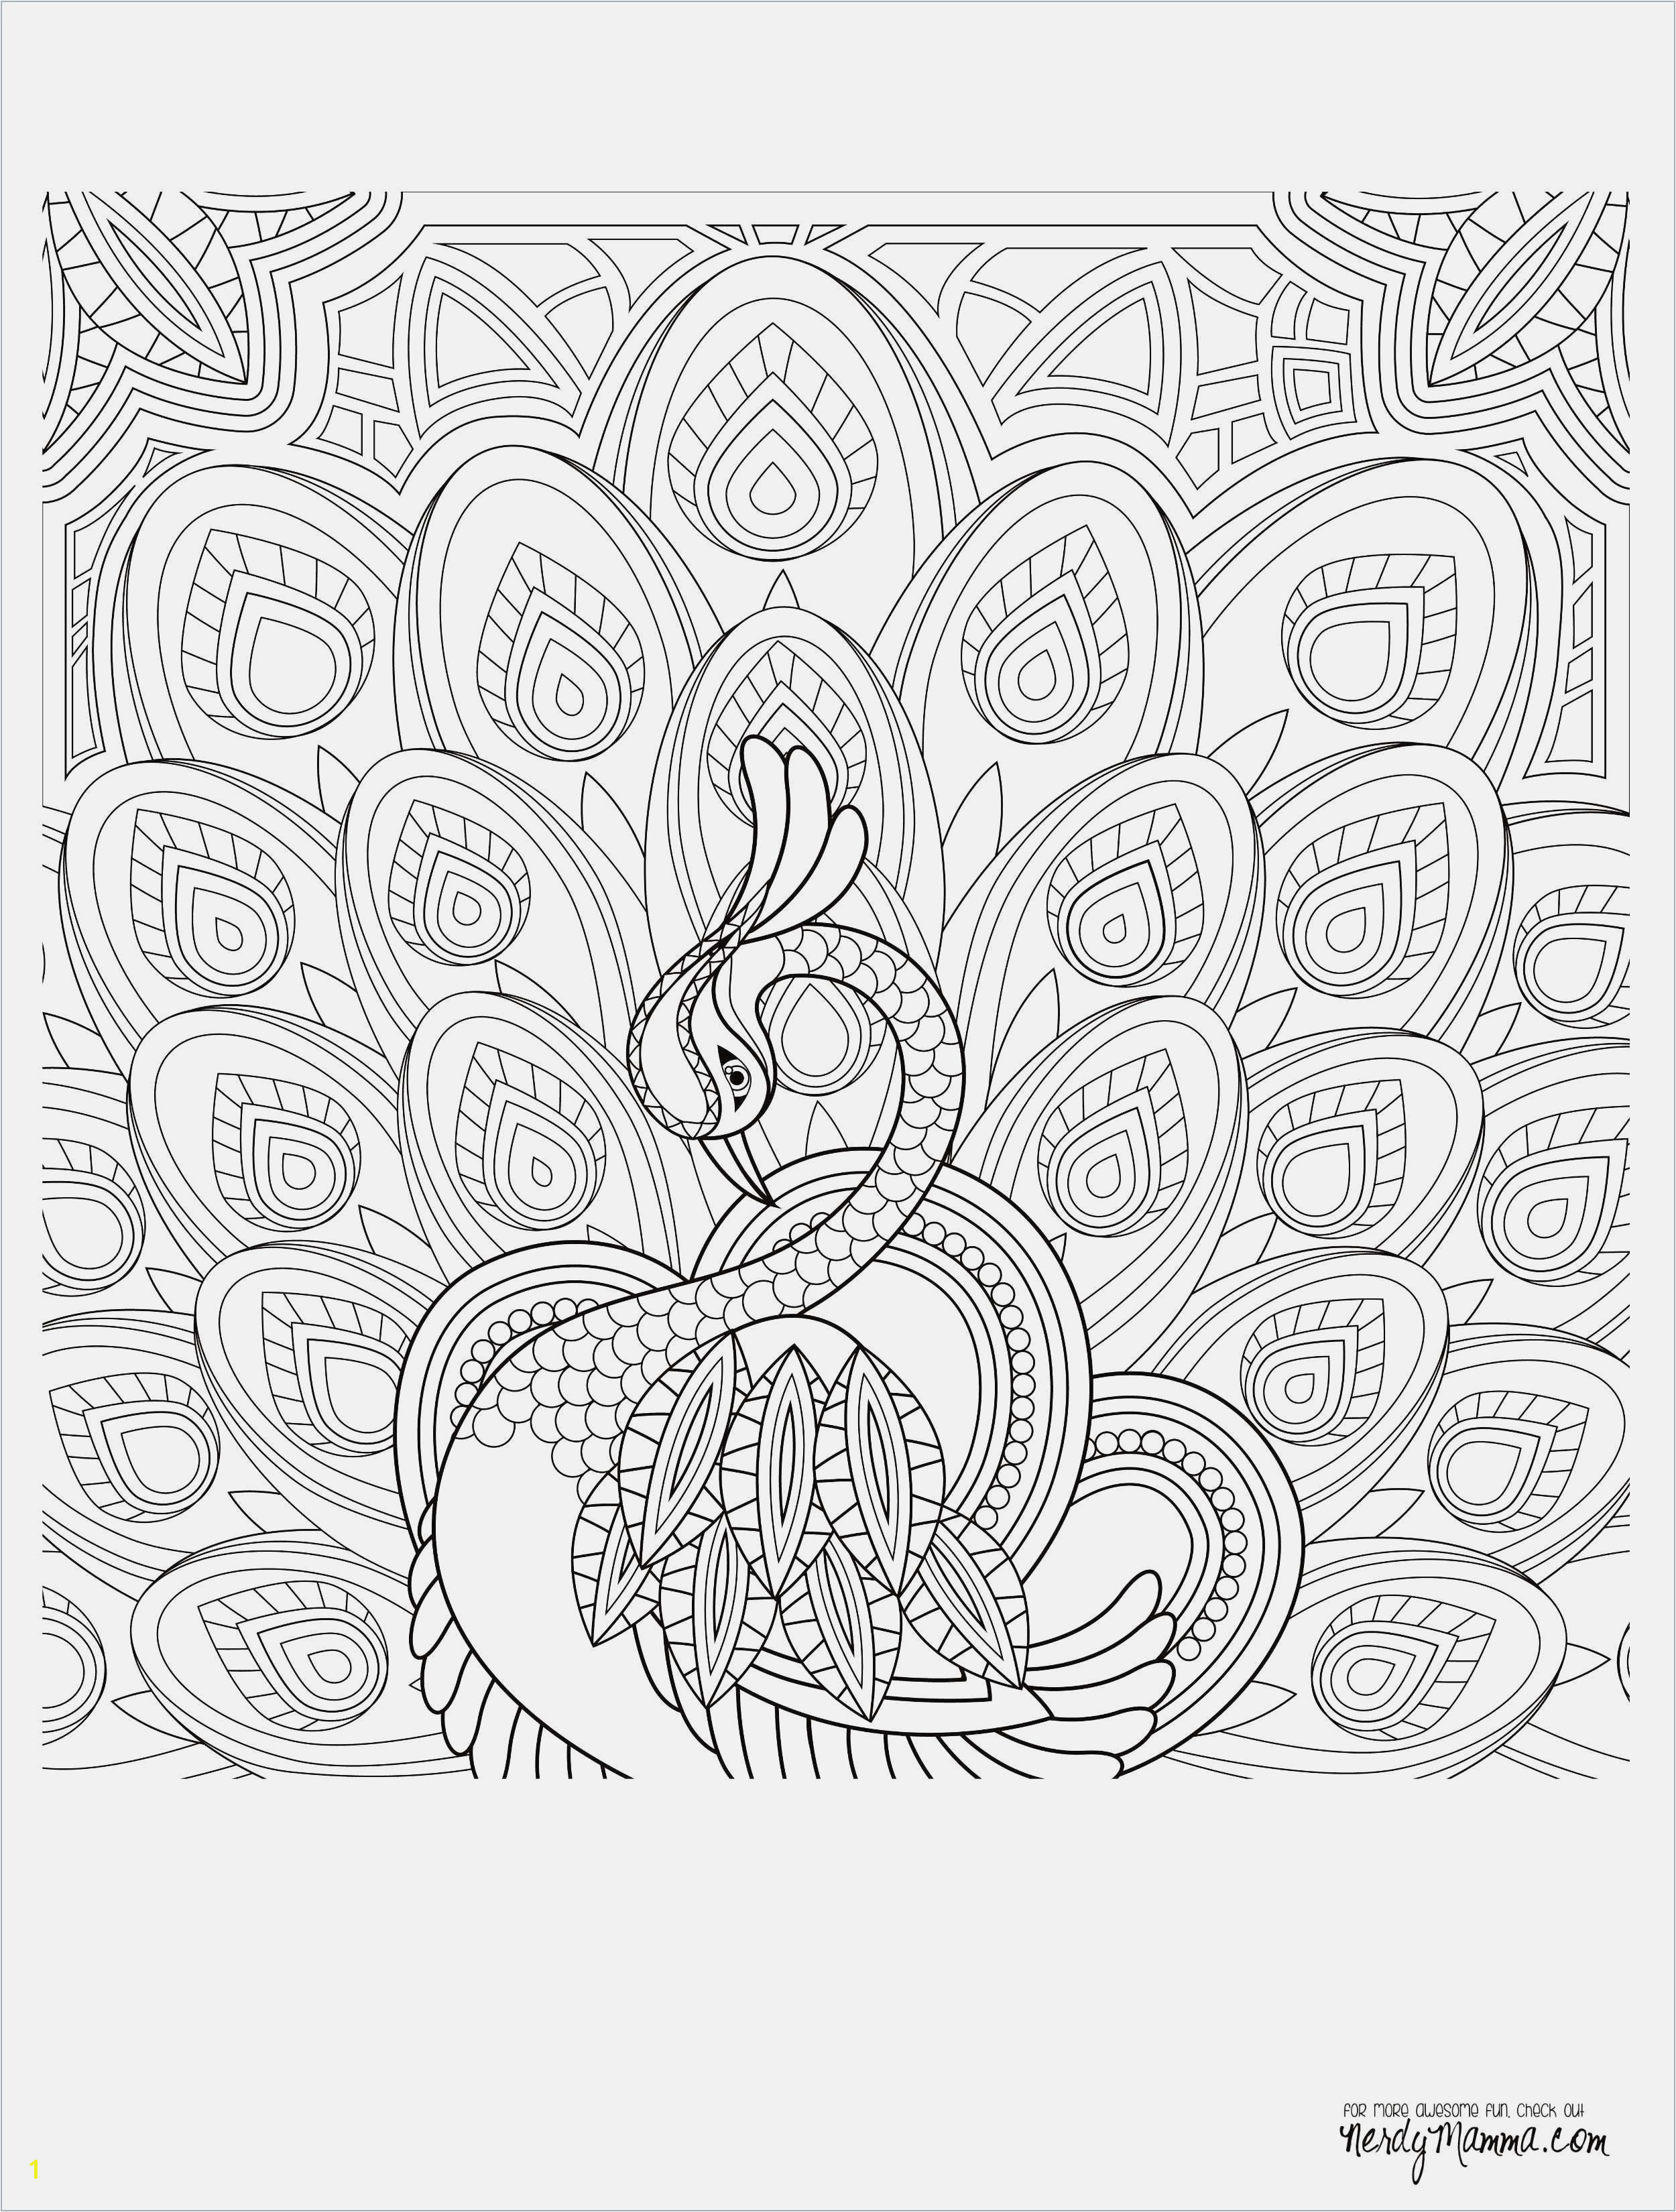 Free Fall Coloring Pages Free Download Fall Coloring Pages Printable New Number 1 Coloring Pages